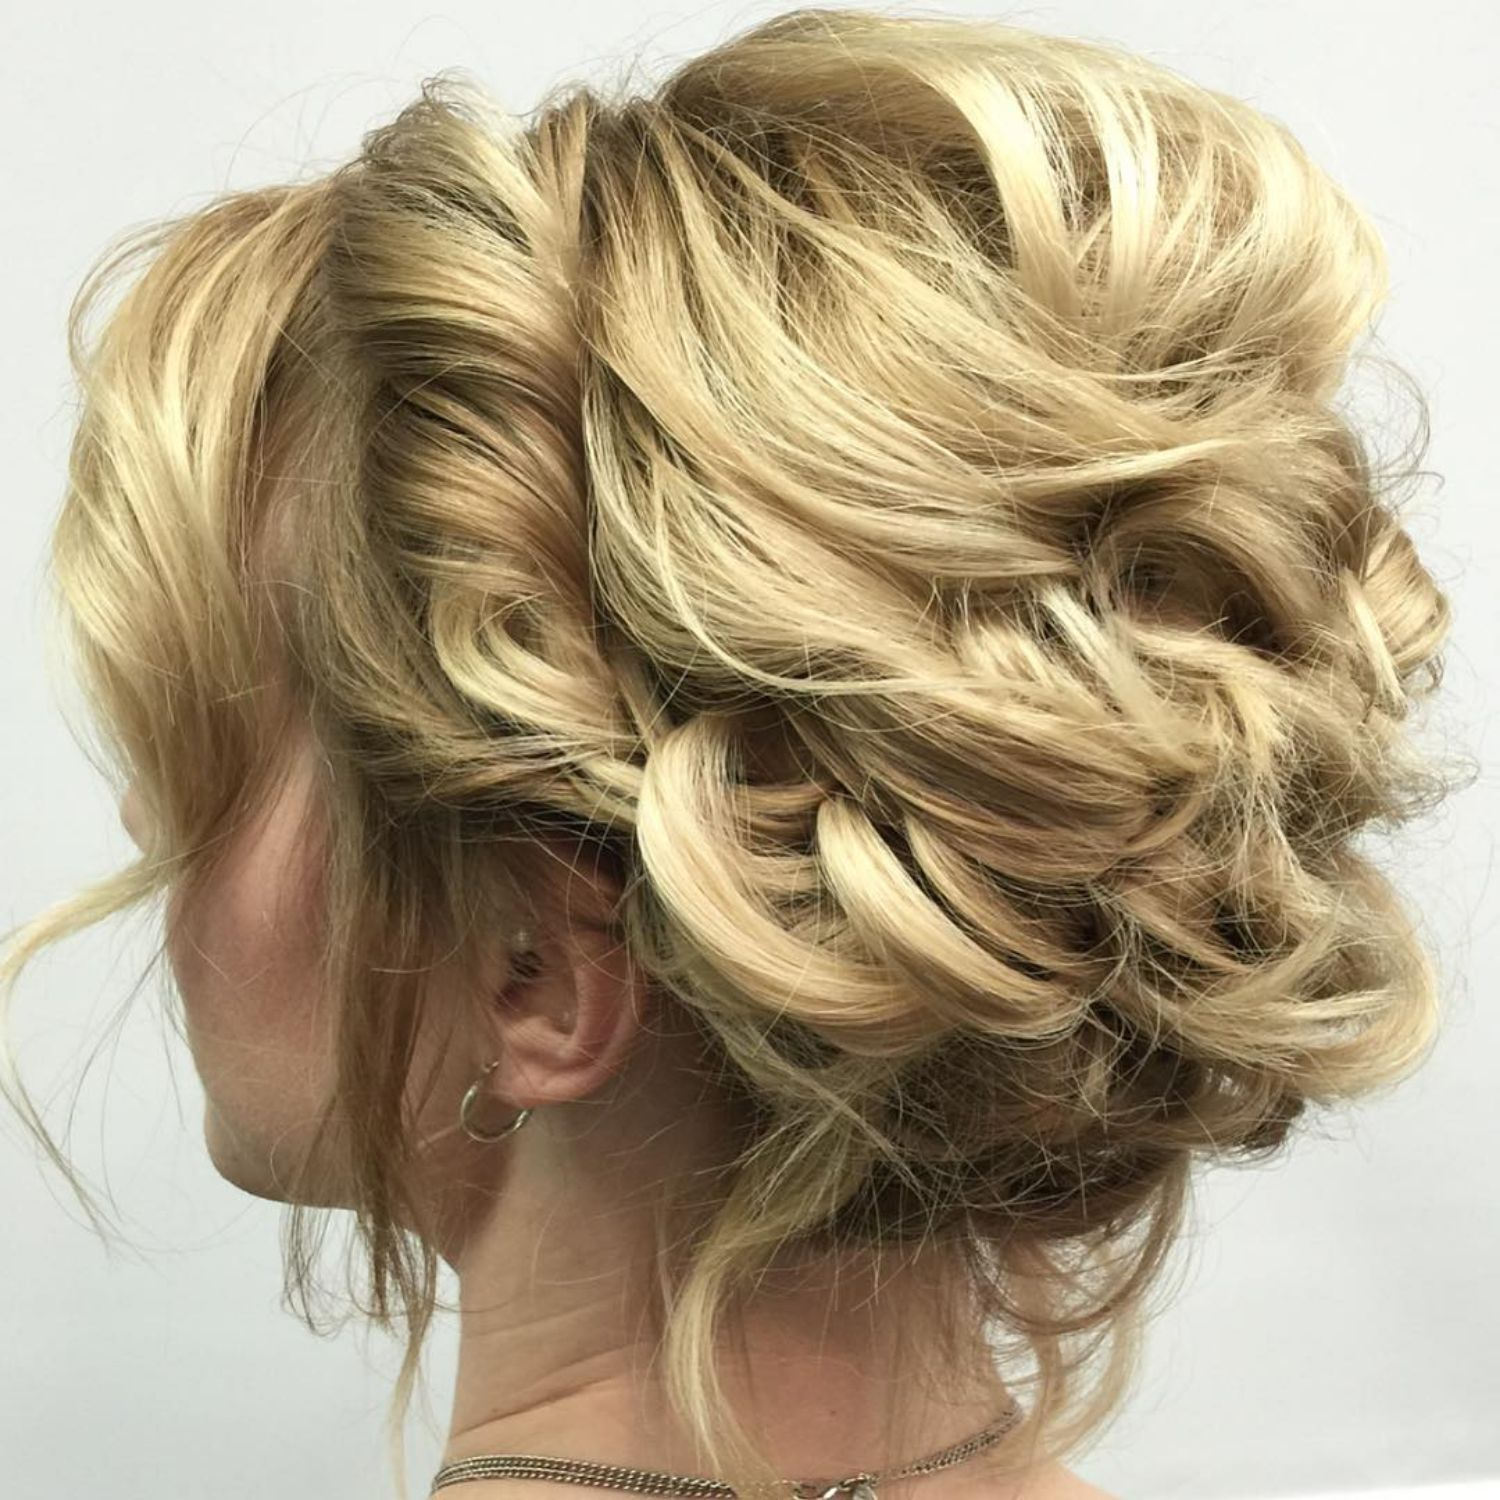 60 Creative Updo Ideas For Short Hair Short Hair Updo Thick Hair Styles Hair Styles